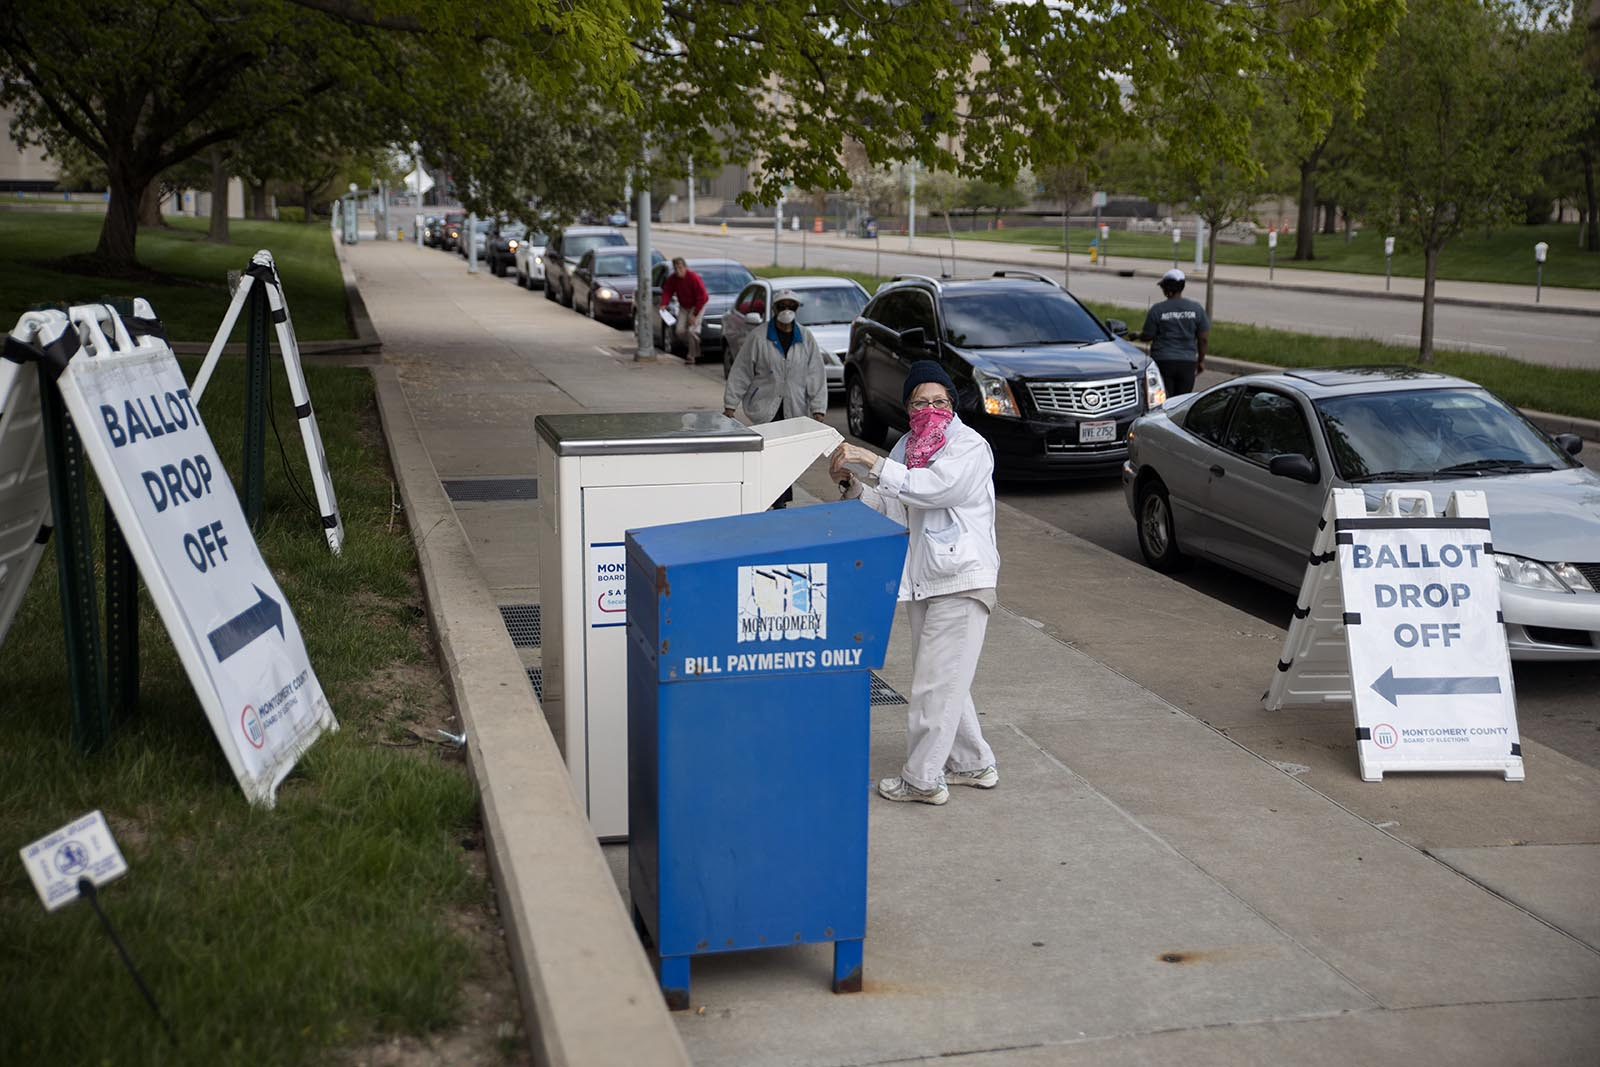 Ohio voters line up in their cars to drop off their ballots at the Board of Elections in Dayton, Ohio on April 28.